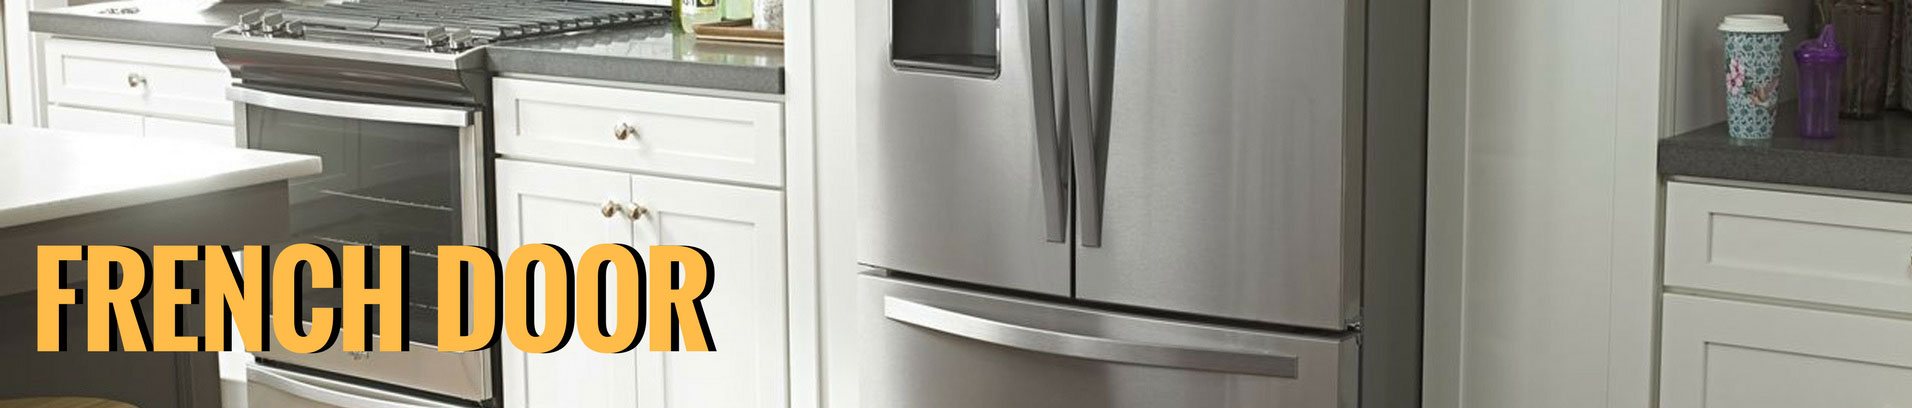 French Door Vs Side By Side Refrigerators Appliances Connection